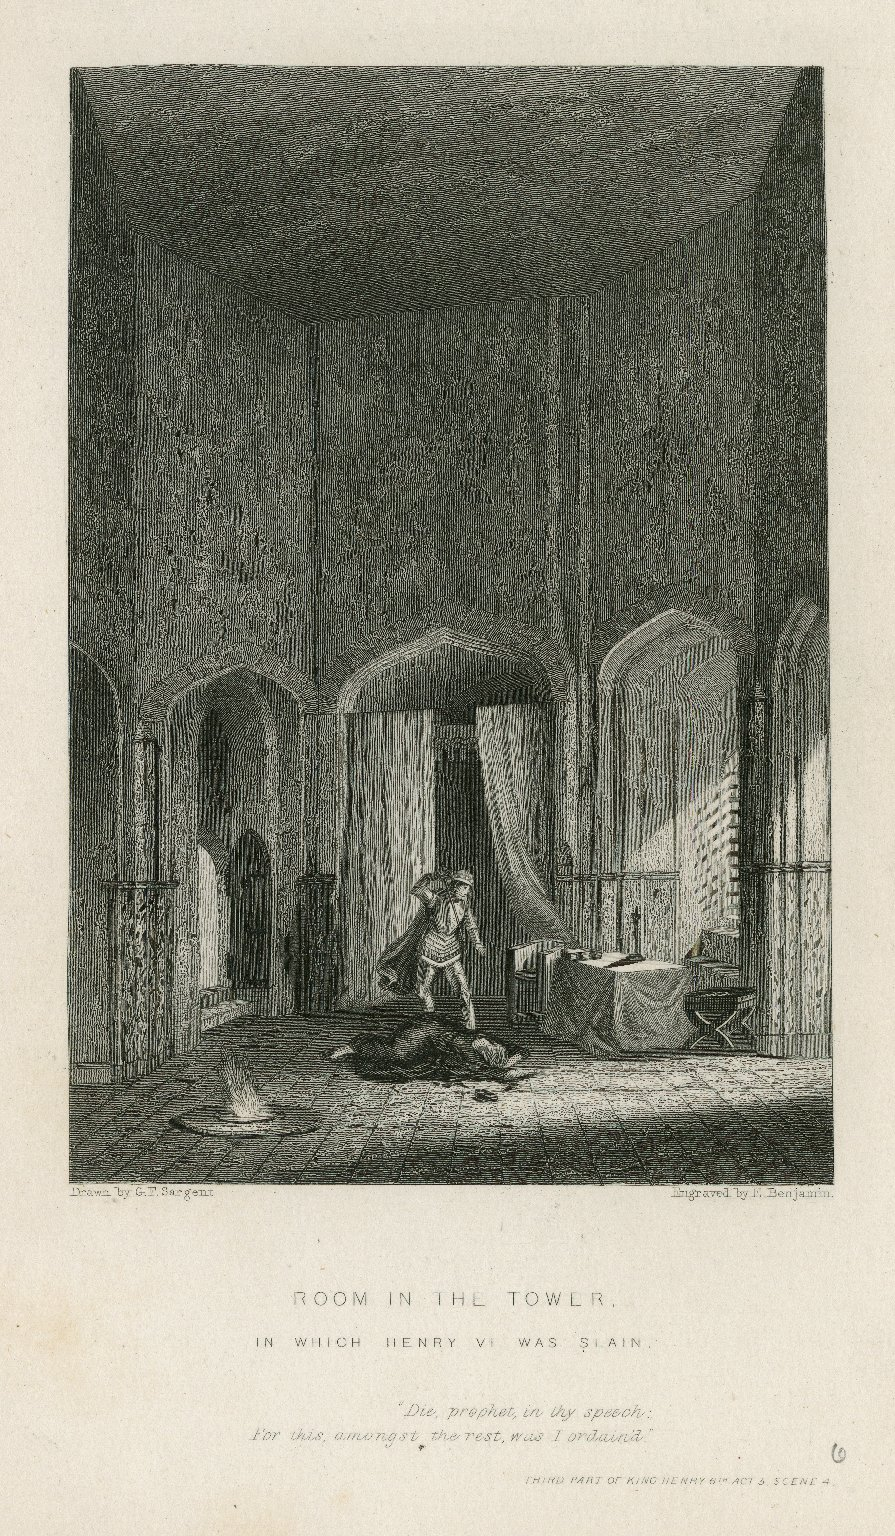 Room in the Tower in which Henry VI was slain ... third part of King Henry 6th, act 5, scene 4 [i.e. scene 6] [graphic] / drawn by G.F. Sargent ; engraved by E. Benjamin.